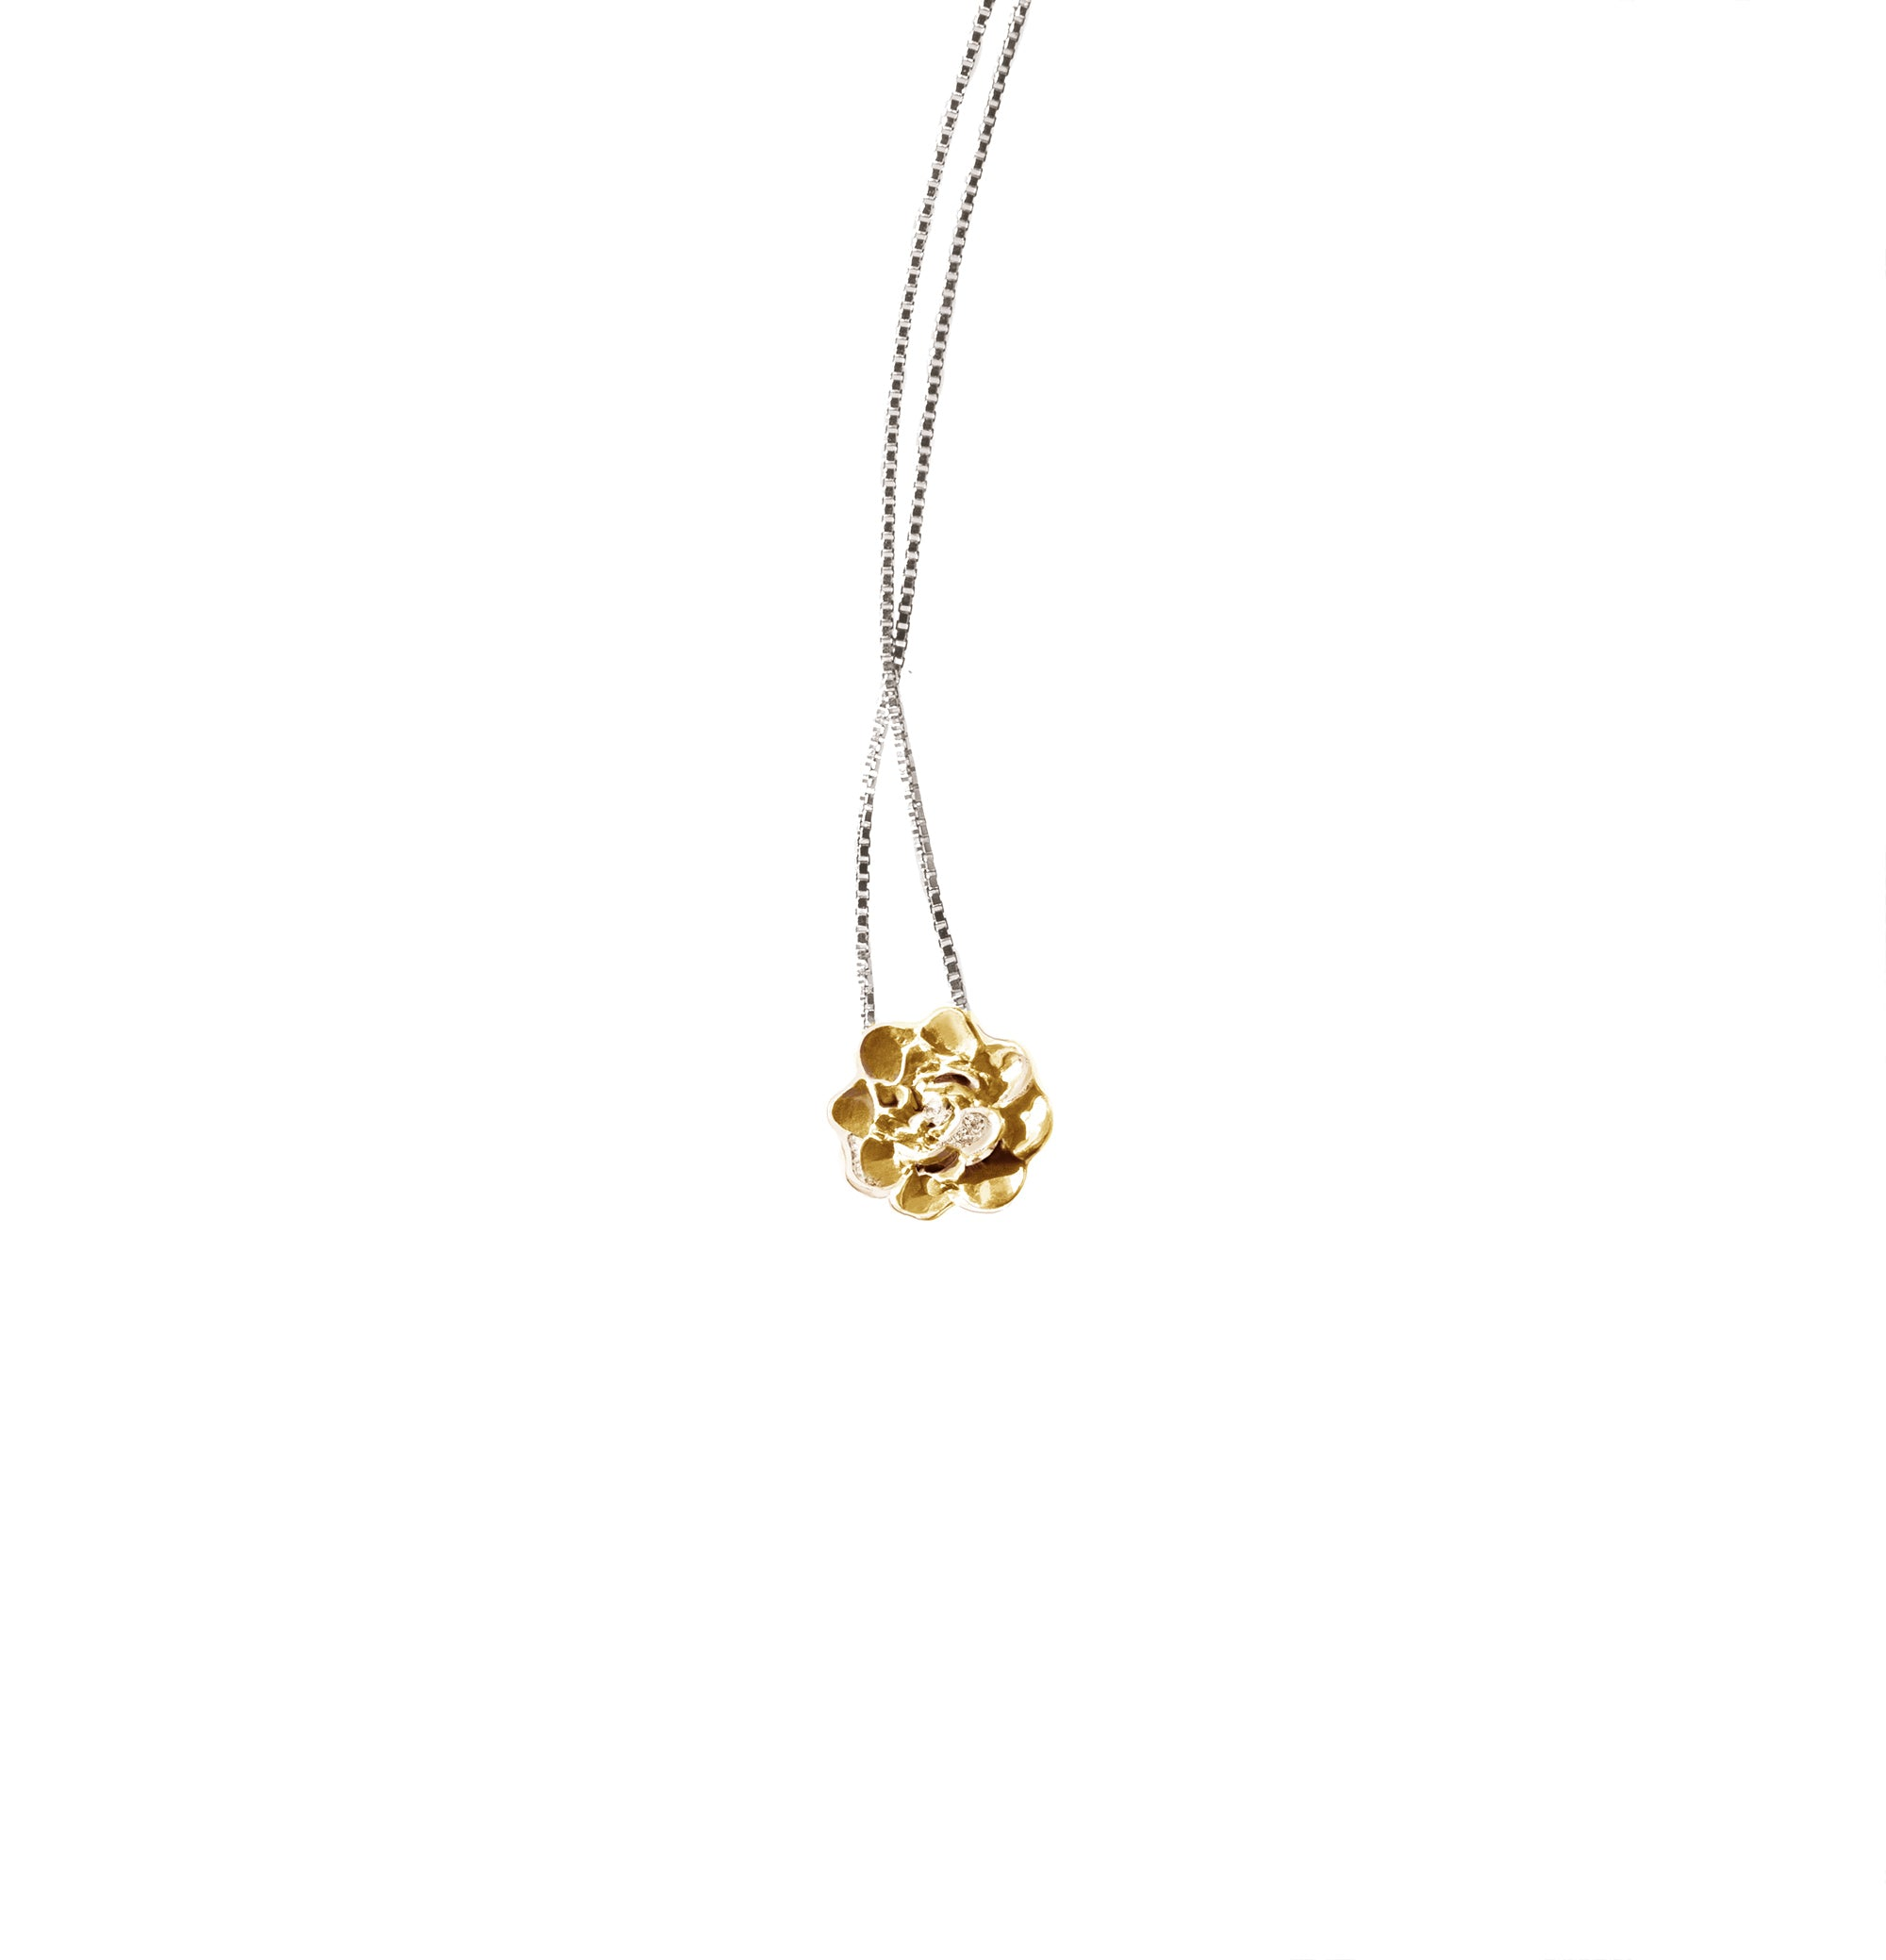 Camellia pendant charm in 18 KT yellow gold